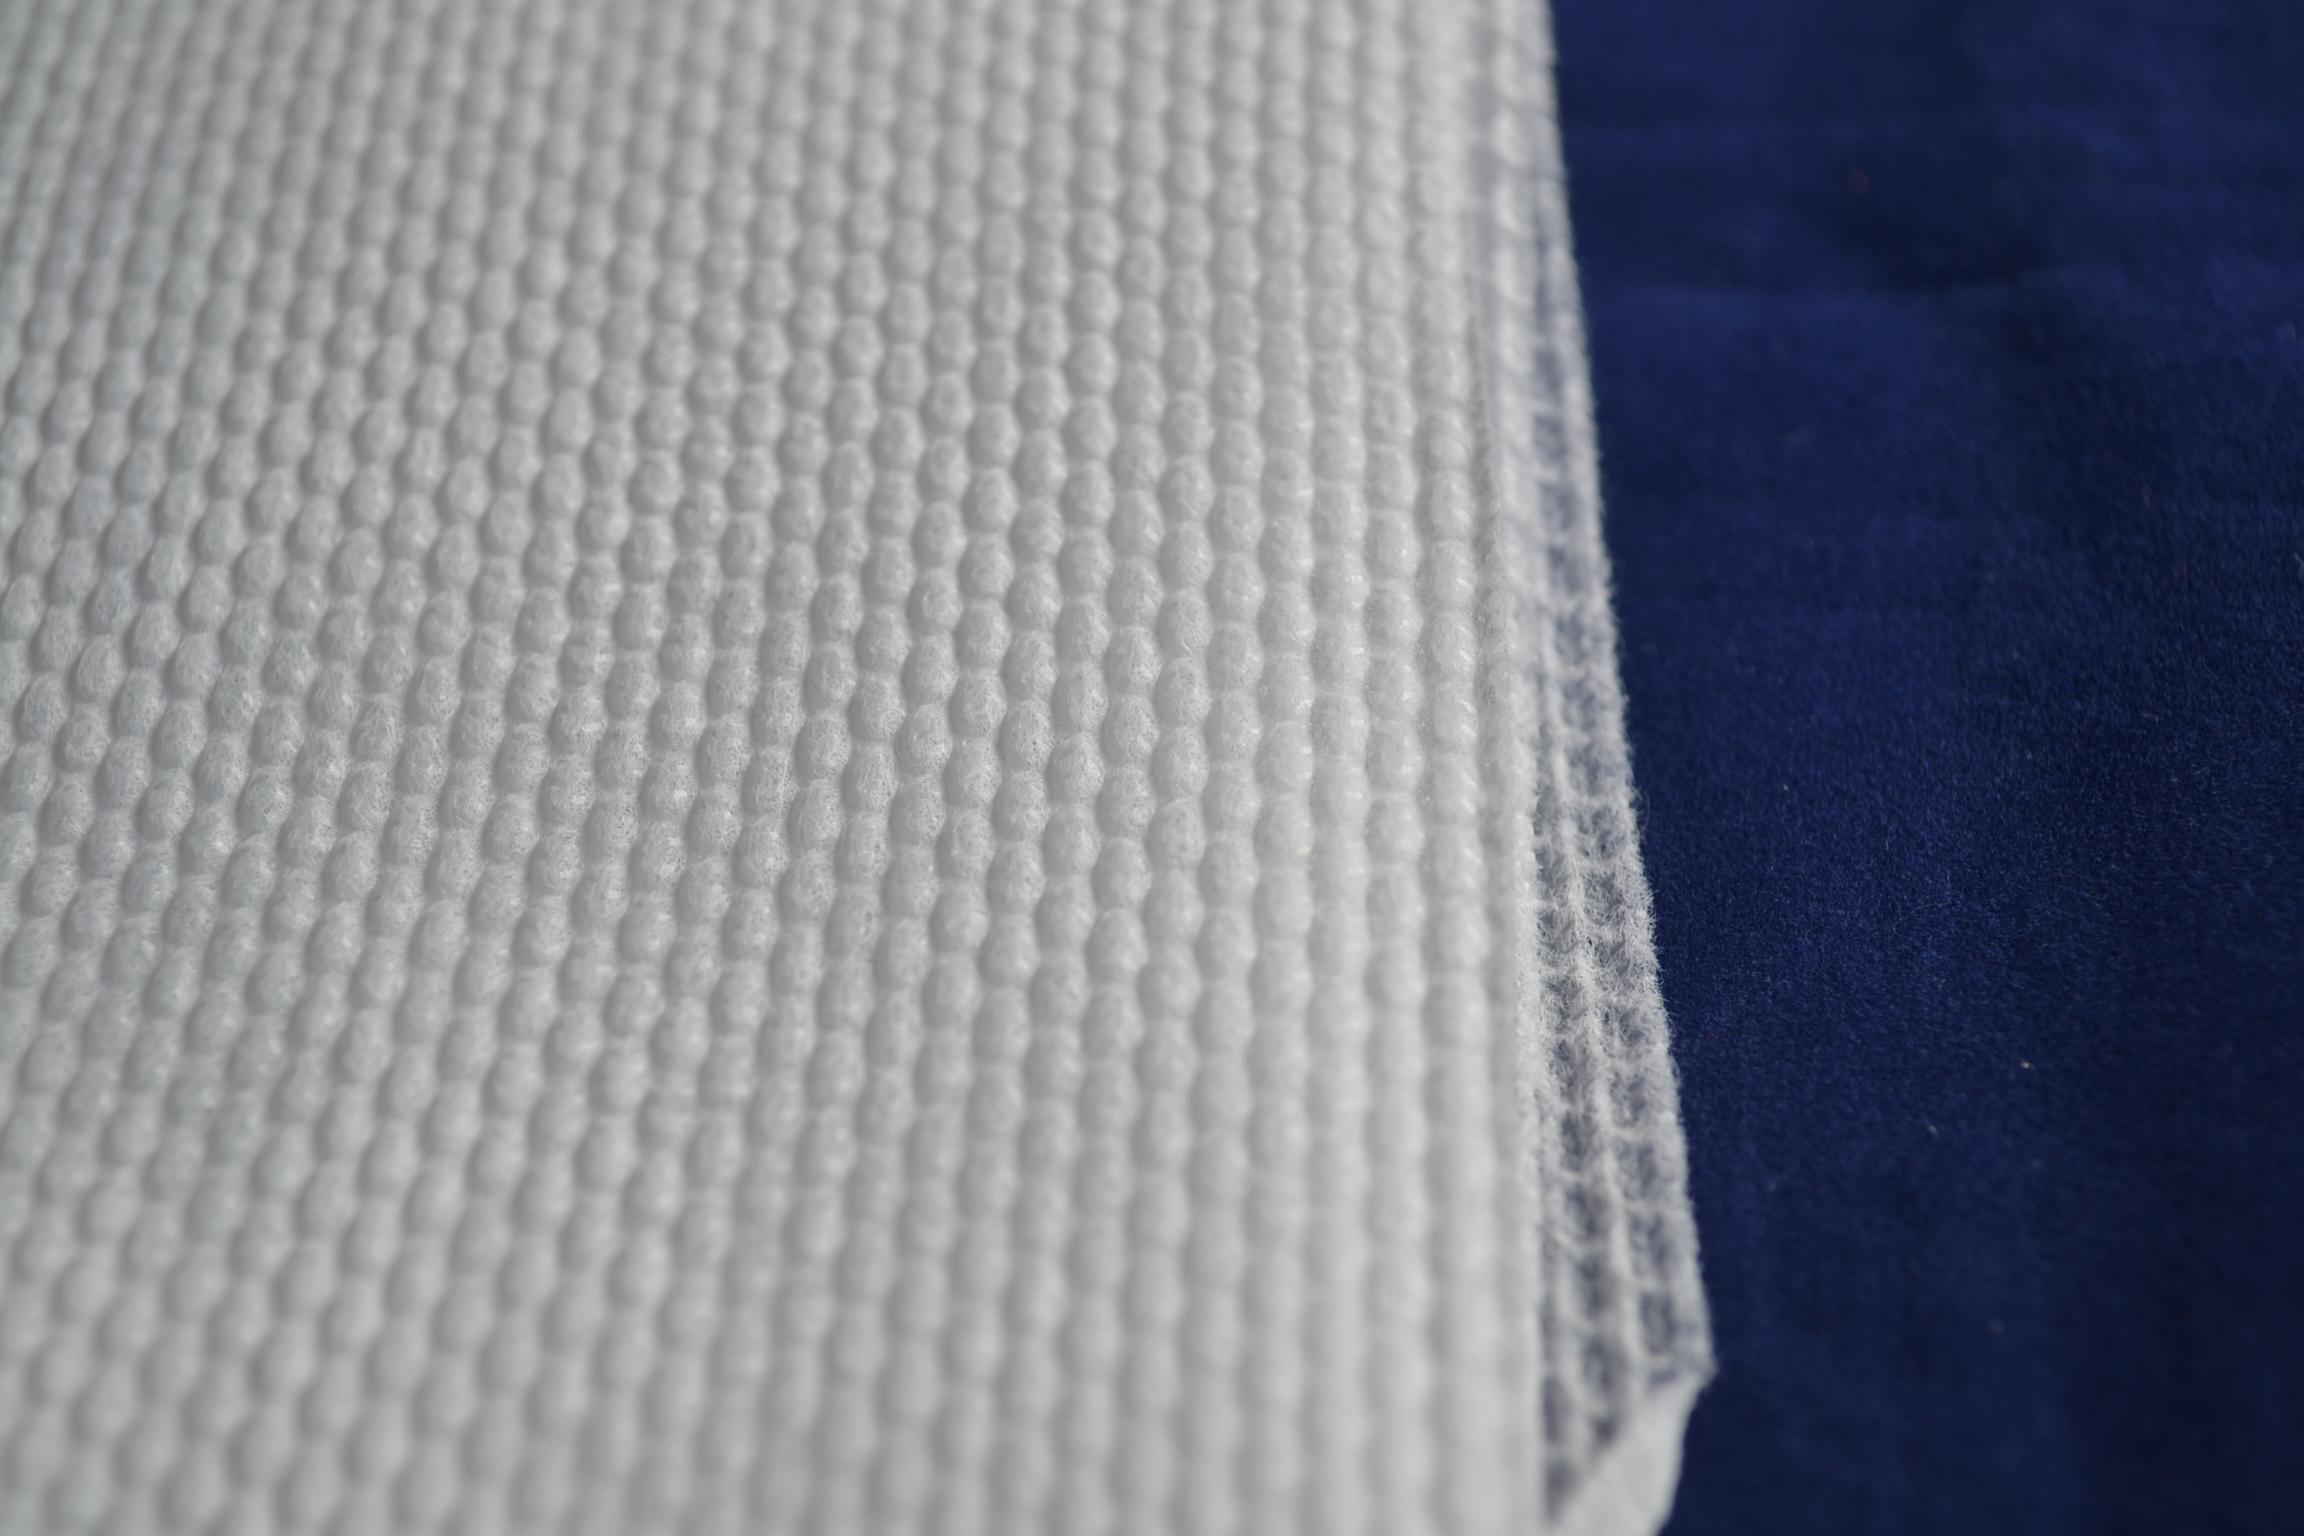 Soft Cloth Mesh Style Spunlace Nonwoven For Baby Diapers